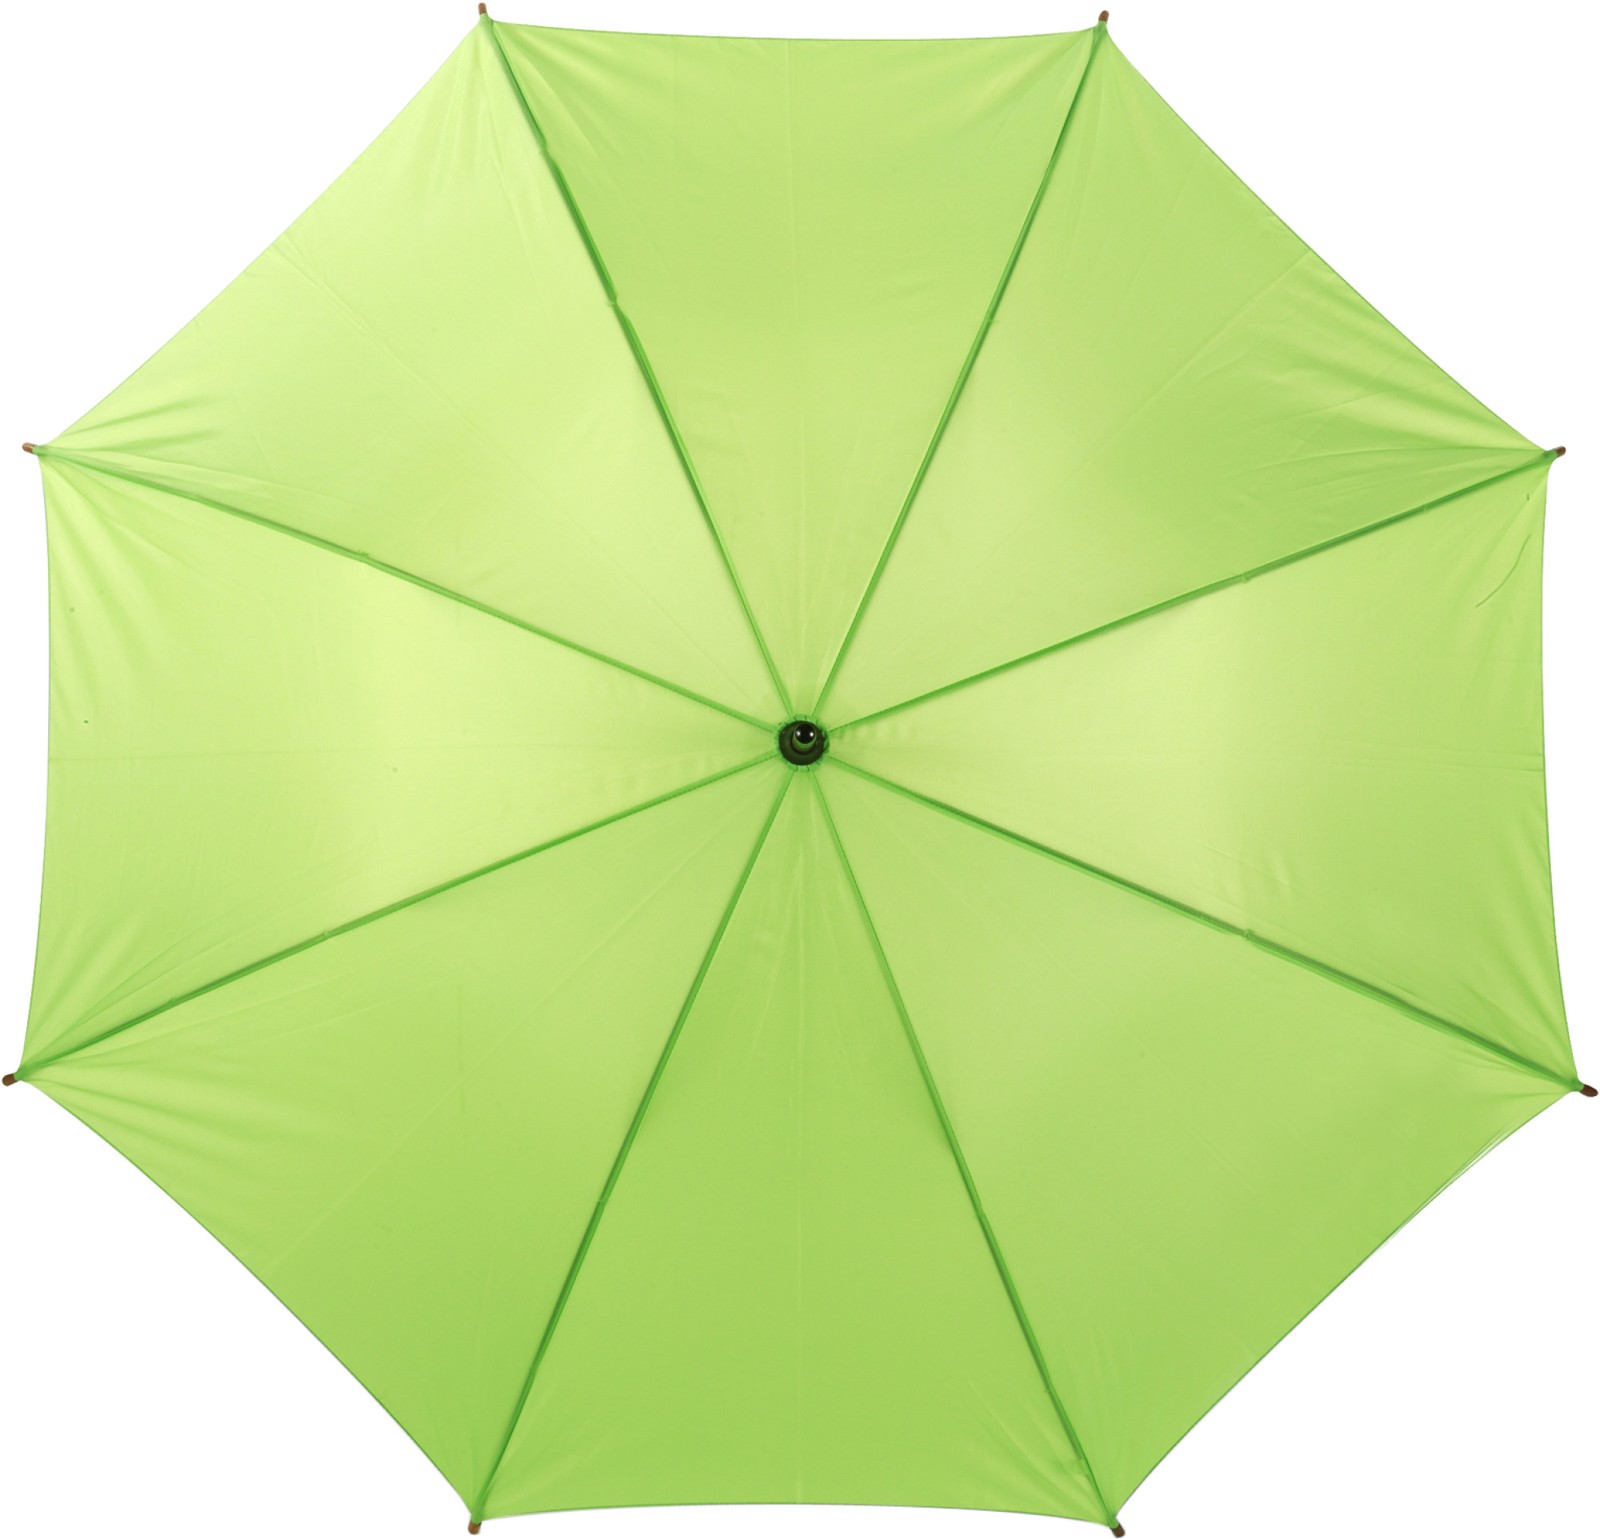 Polyester (190T) umbrella - Lime